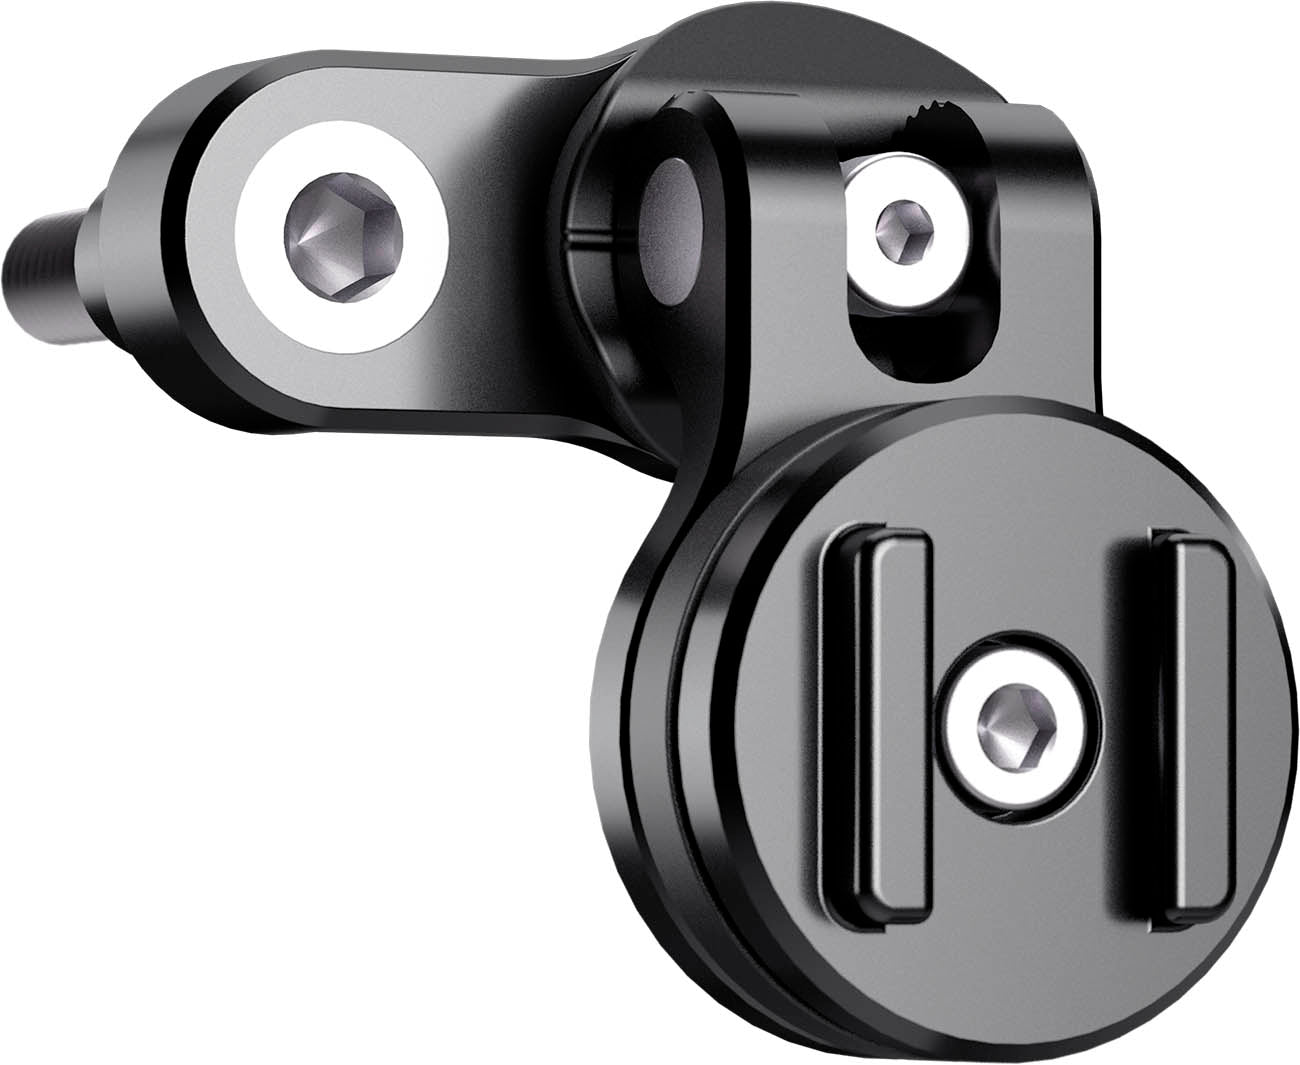 SP Connect Clutch Mount Pro